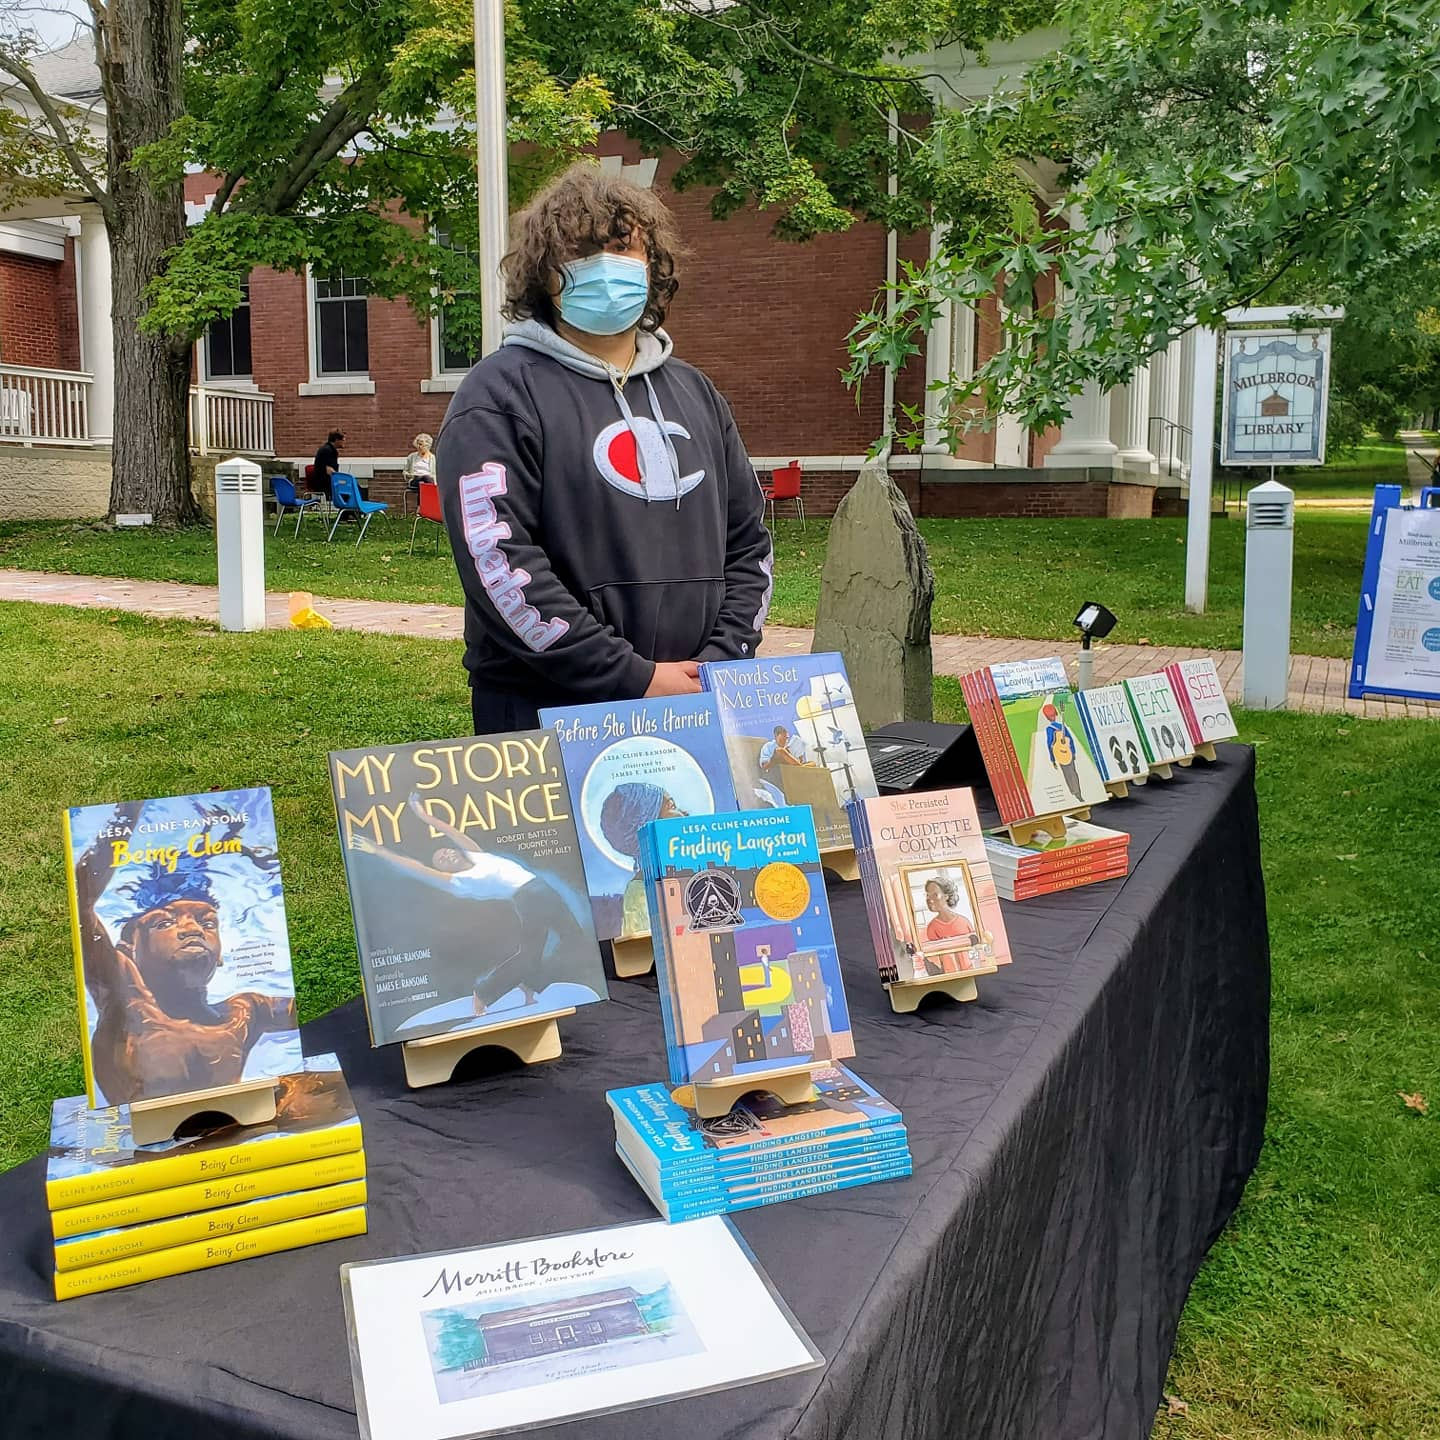 <strong>A salesperson from Merritt Bookstore staffed the book sale table outside the Millbrook Library as part of the 2021 Community Read that was held as an alternative to the traditional Millbrook Literary Festival this past weekend.<em>Photoby Sam Falk</em></strong>